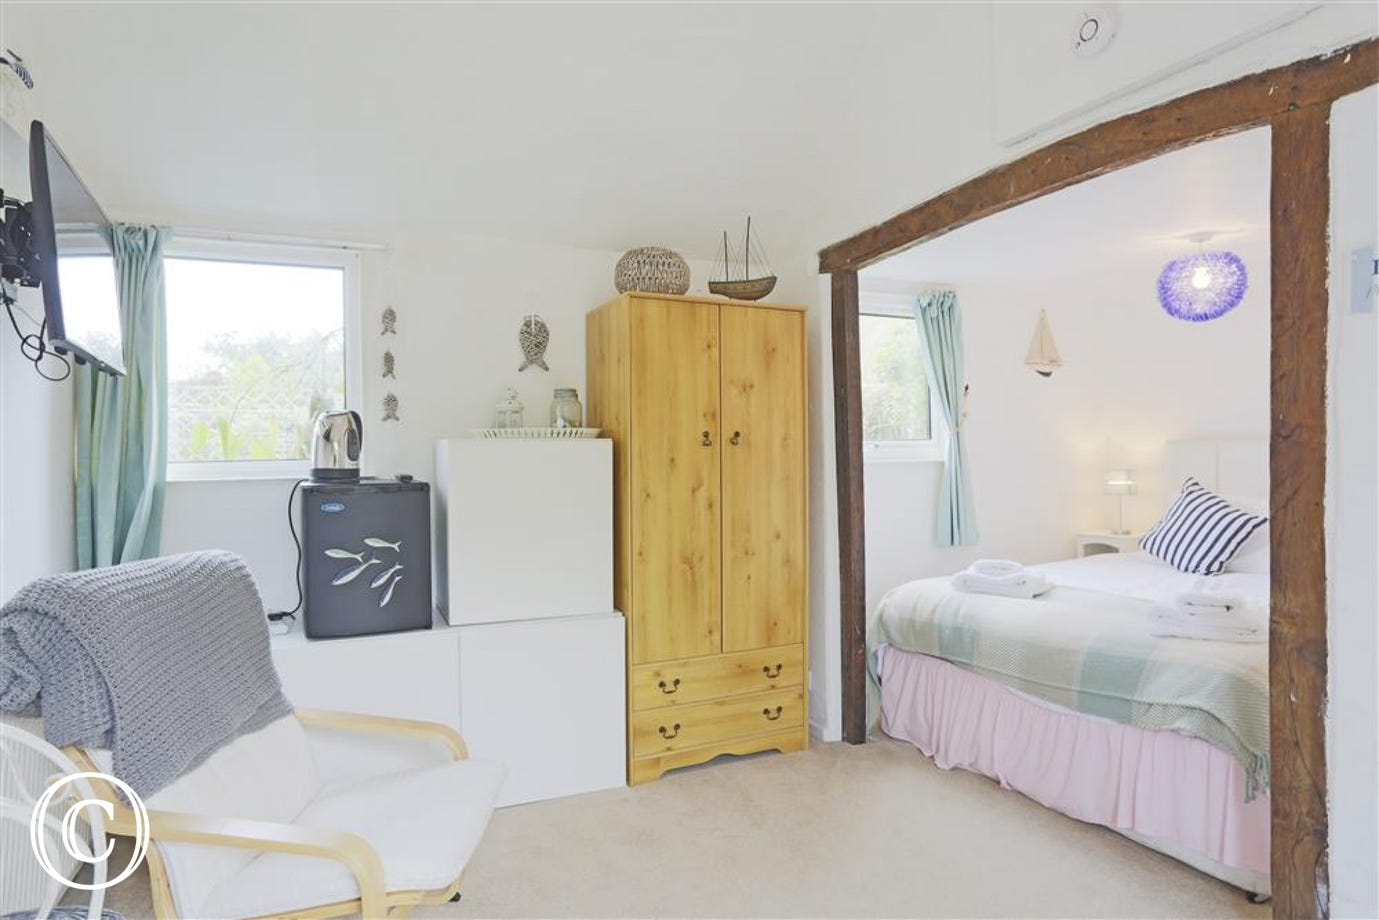 Tucked away in the Annexe guests can enjoy this cosy bedroom.